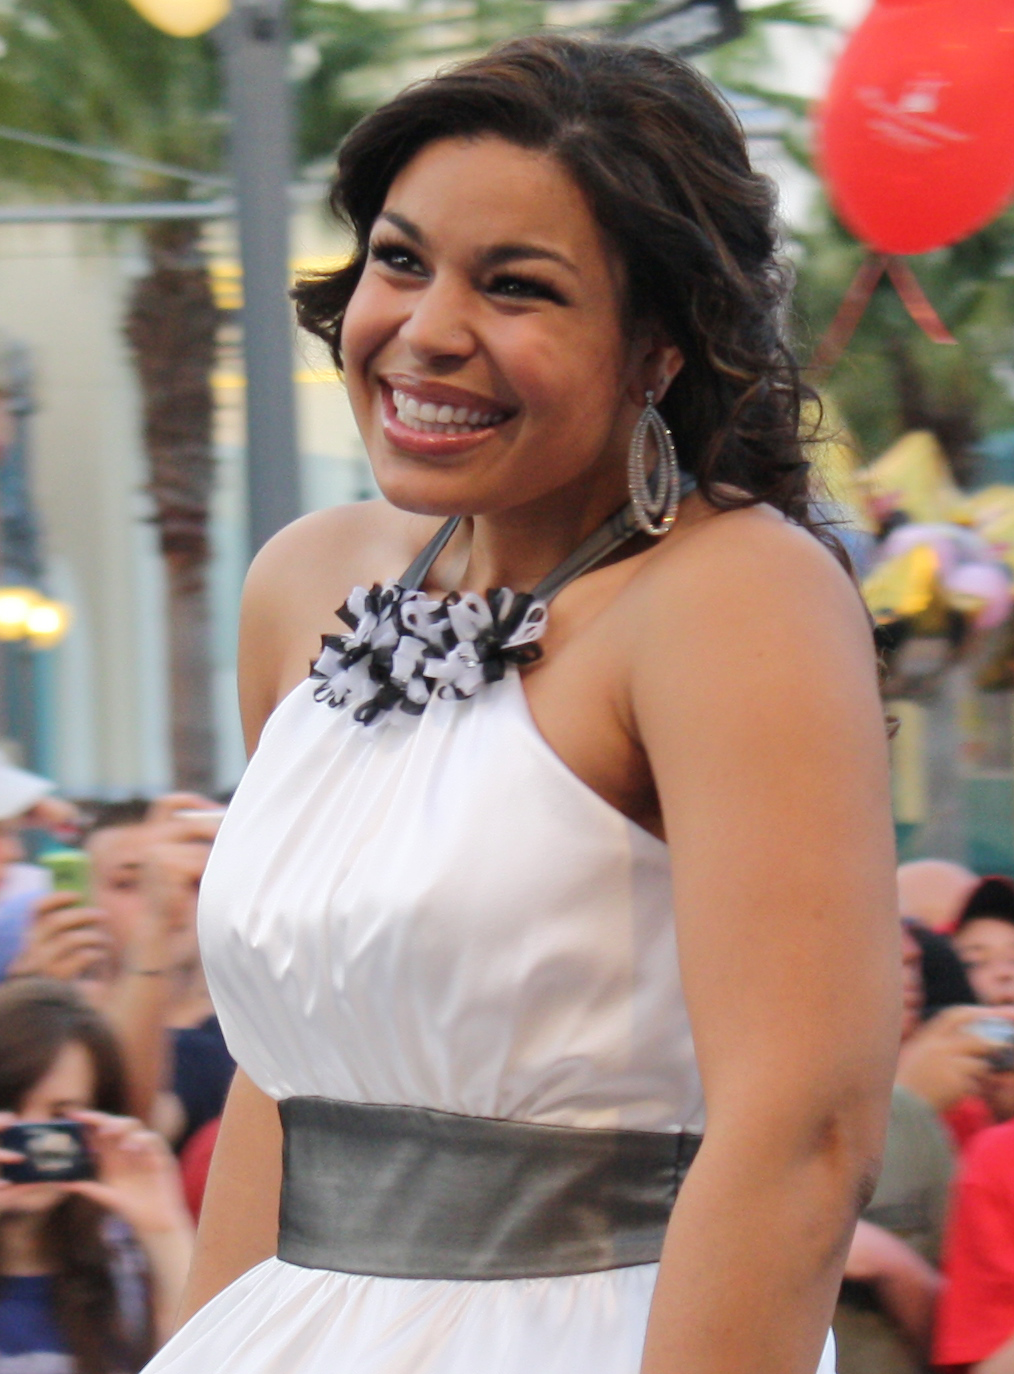 The 28-year old daughter of father Phillippi Sparks and mother Jodi Sparks Jordin Sparks in 2018 photo. Jordin Sparks earned a  million dollar salary - leaving the net worth at 8.5 million in 2018